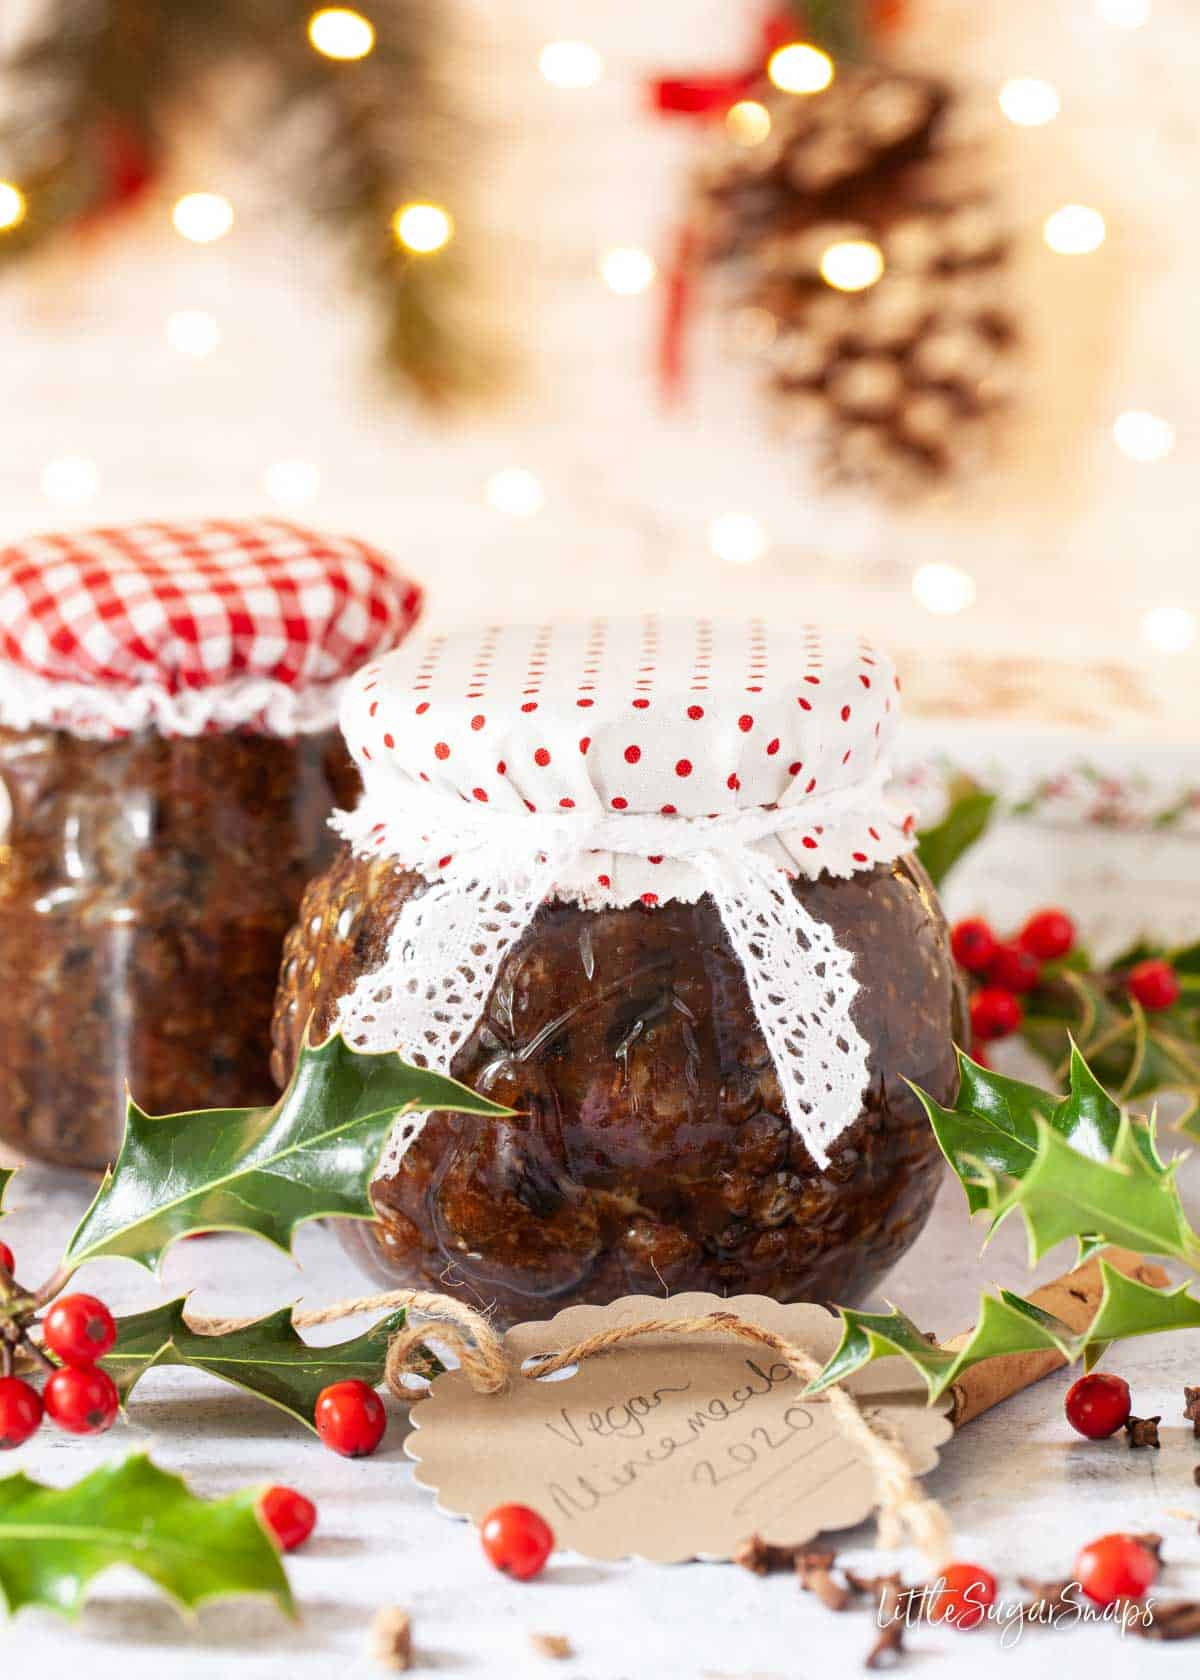 Homemade vegan mincemeat in jars dressed up for gifting